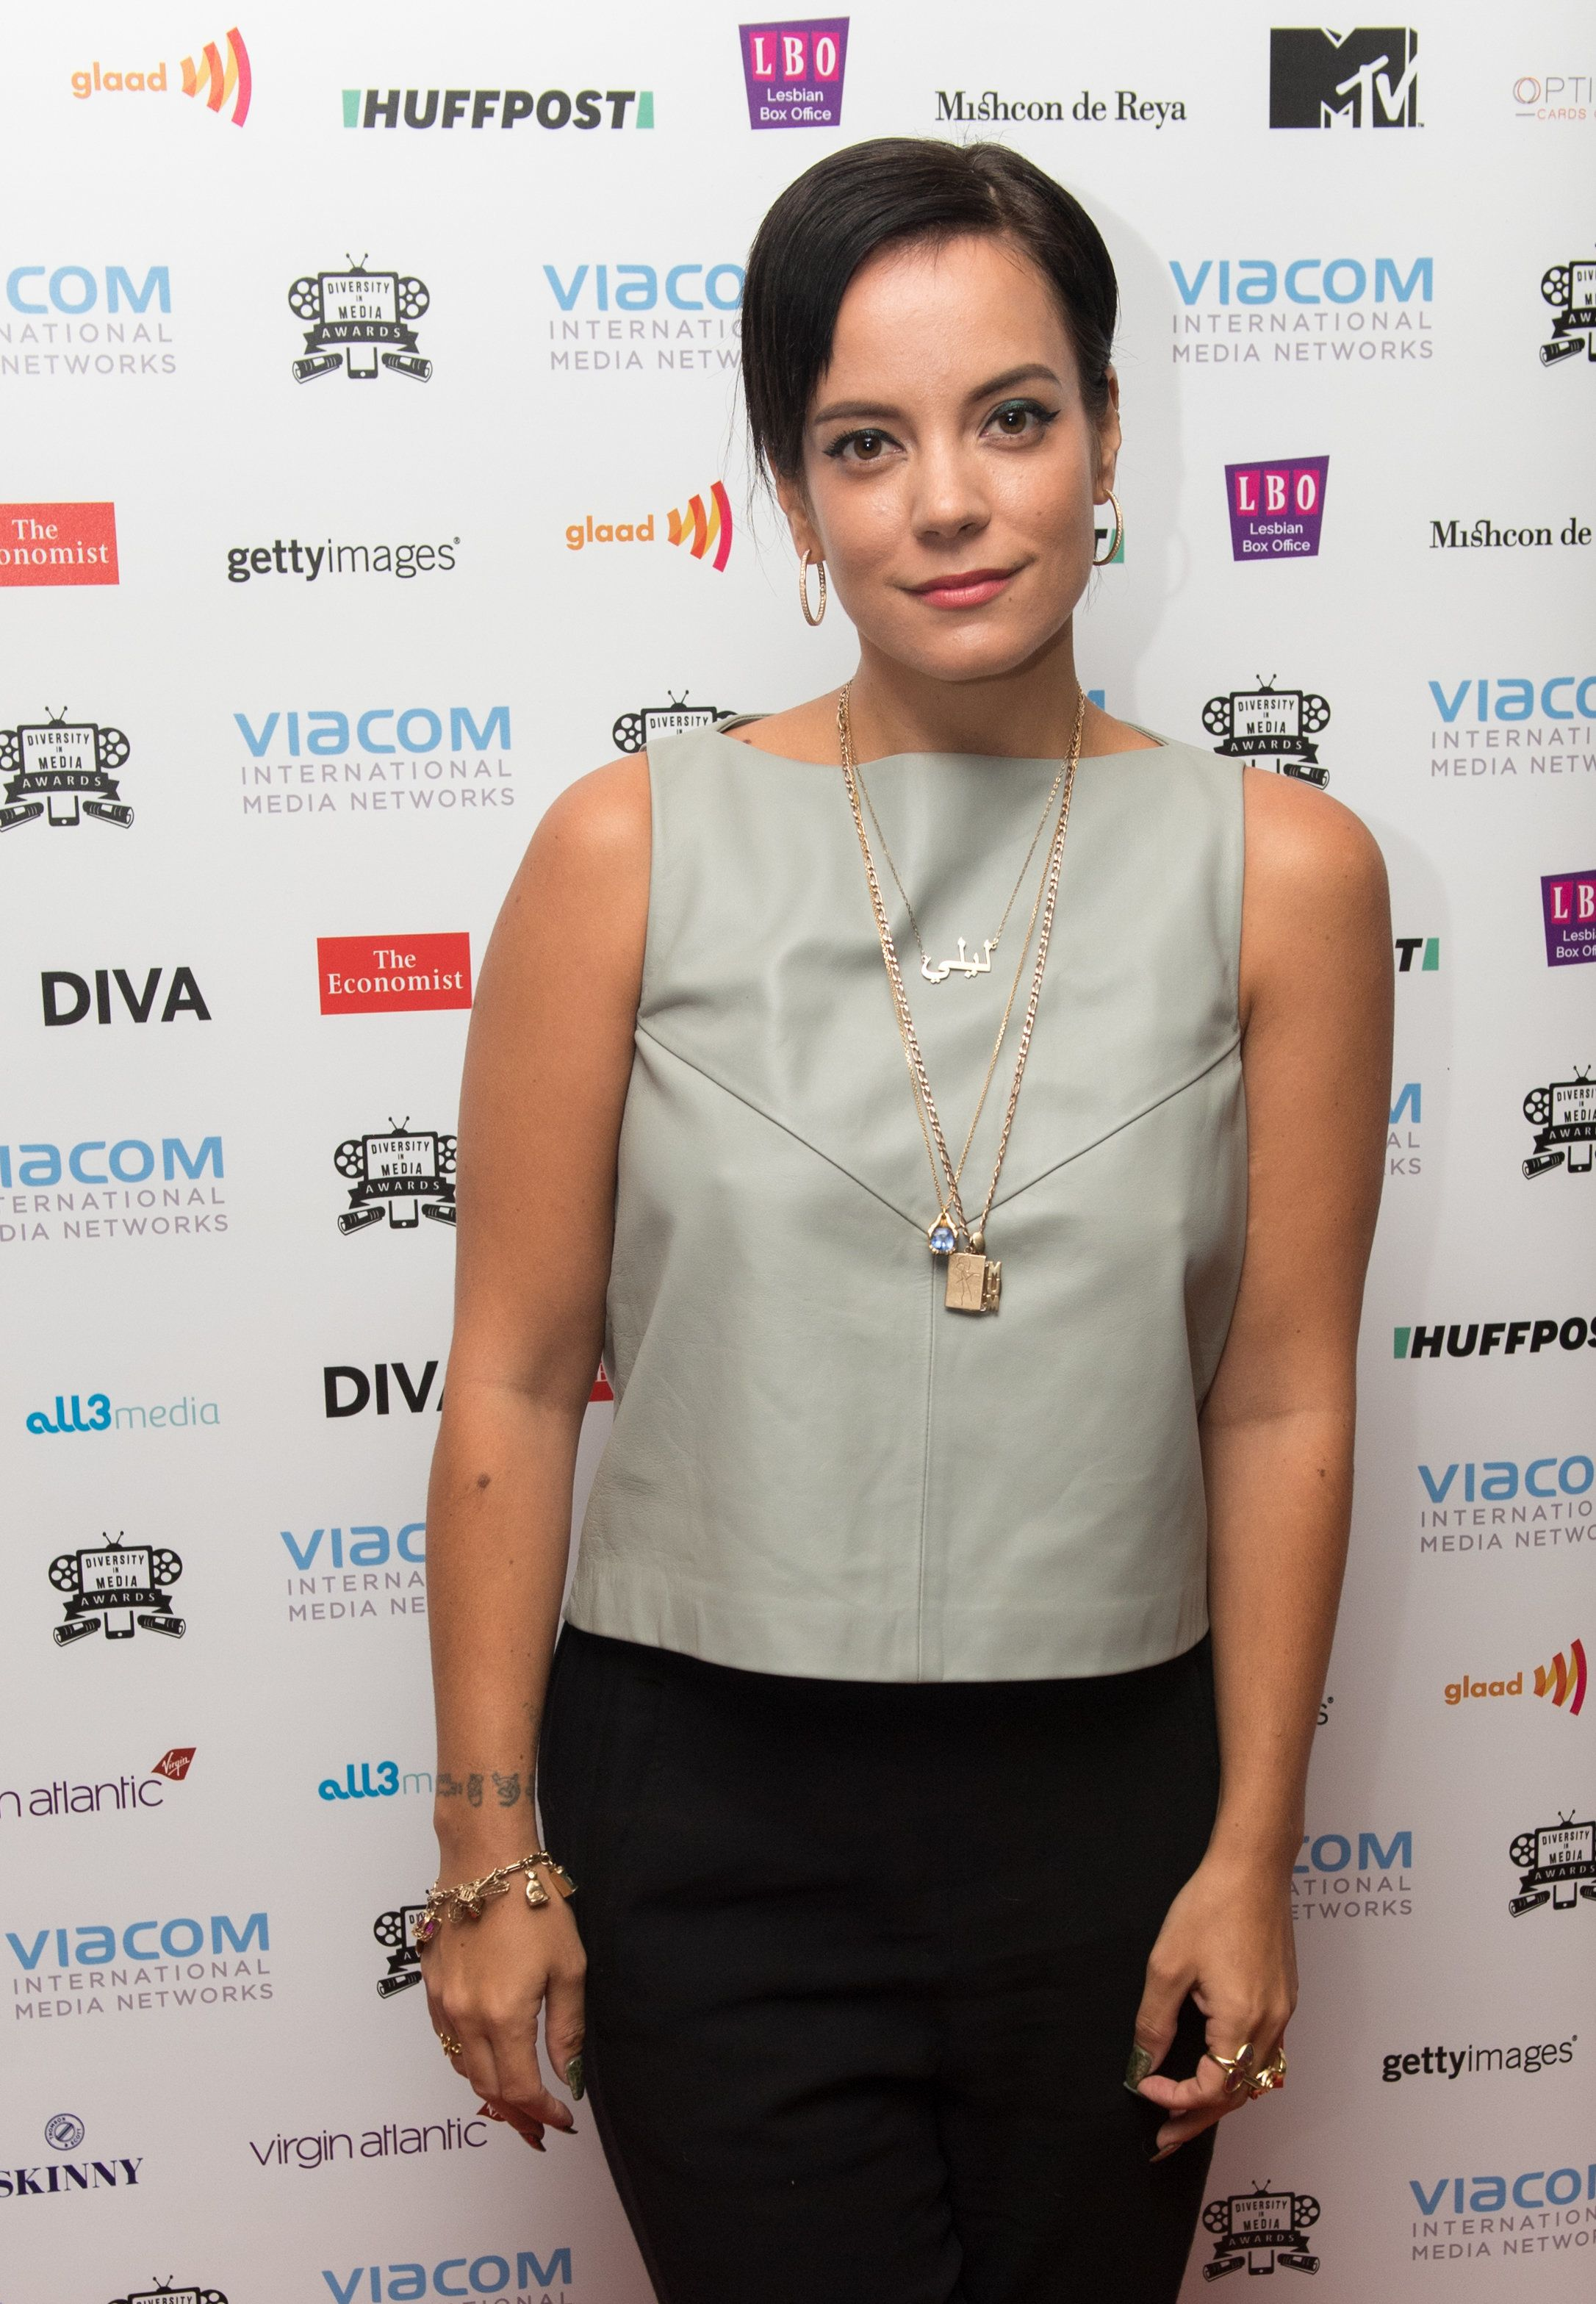 Lily Allen Shares Fresh Concerns Over Grenfell Tower Inquiry Panel